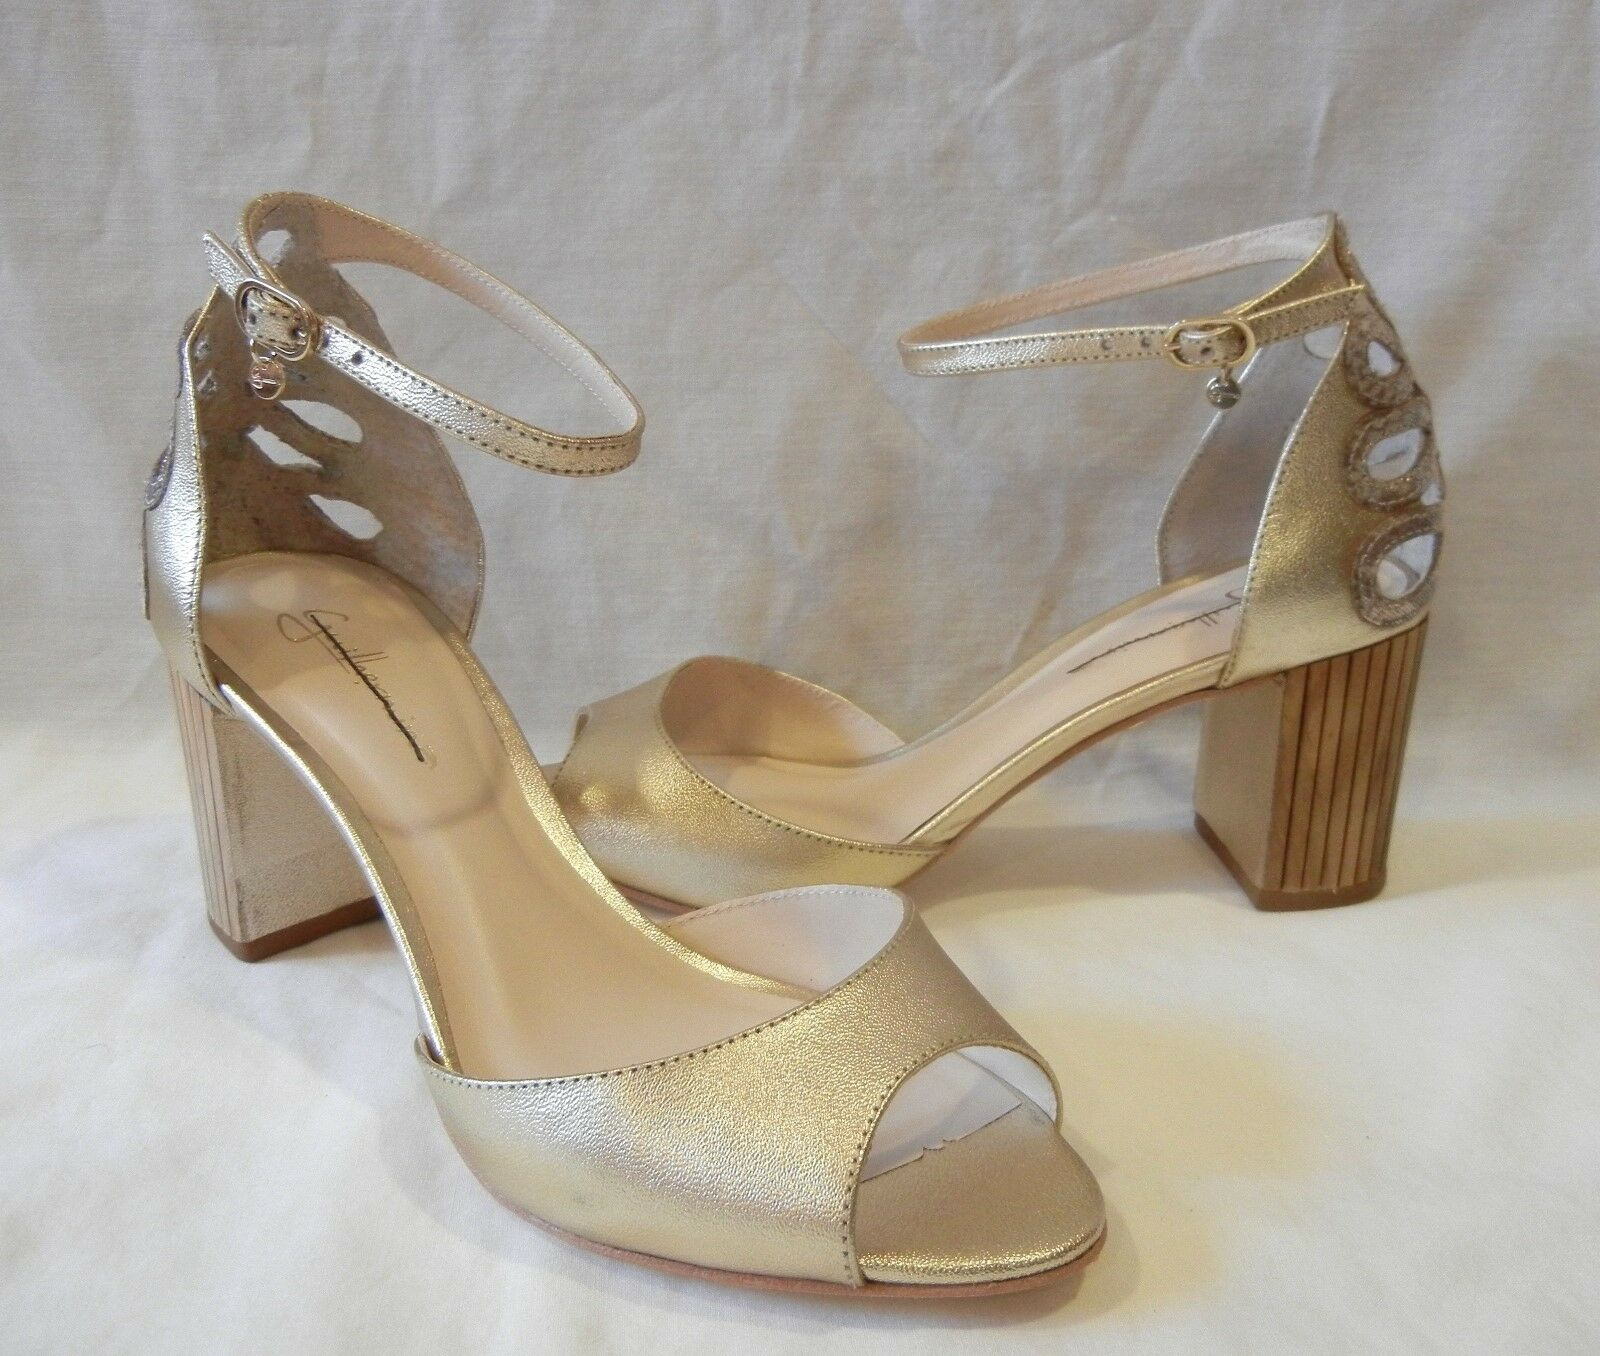 Guilhermina Donna's Bechette Gold Pelle Ankle Strap Heels Retail  140 size 6